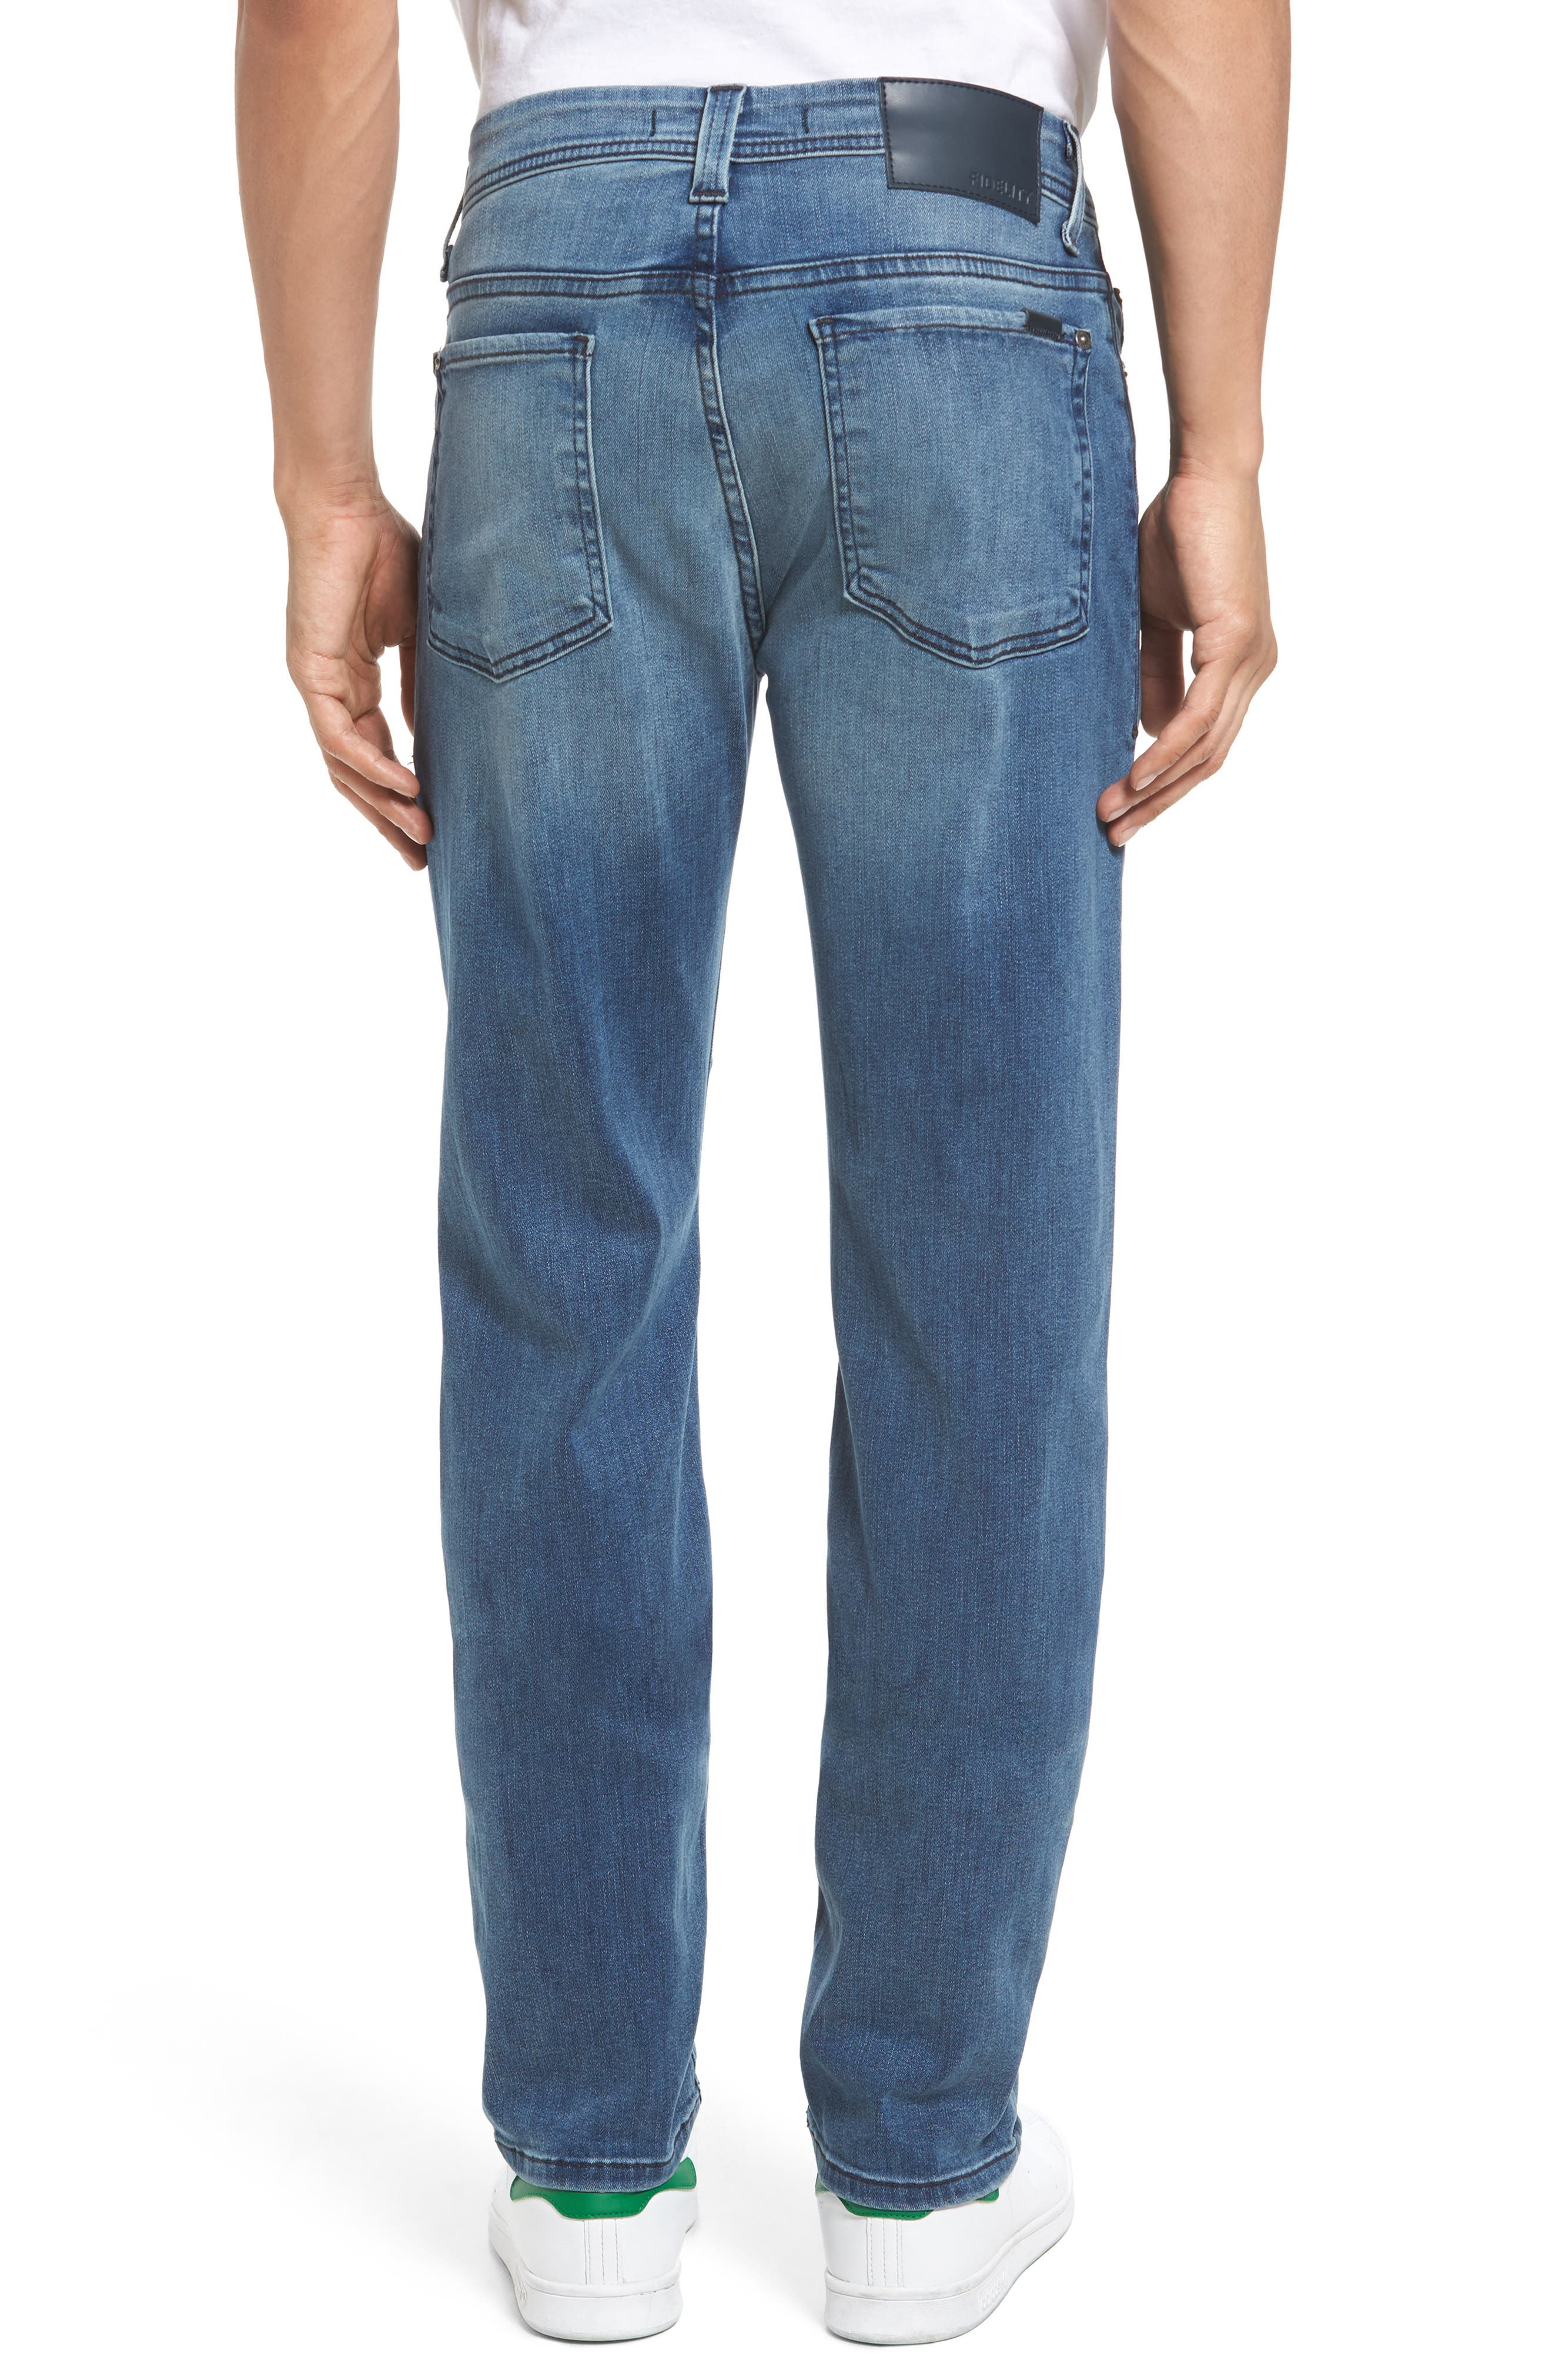 Jimmy Slim Straight Leg Jeans,                             Alternate thumbnail 2, color,                             Cortana Blue